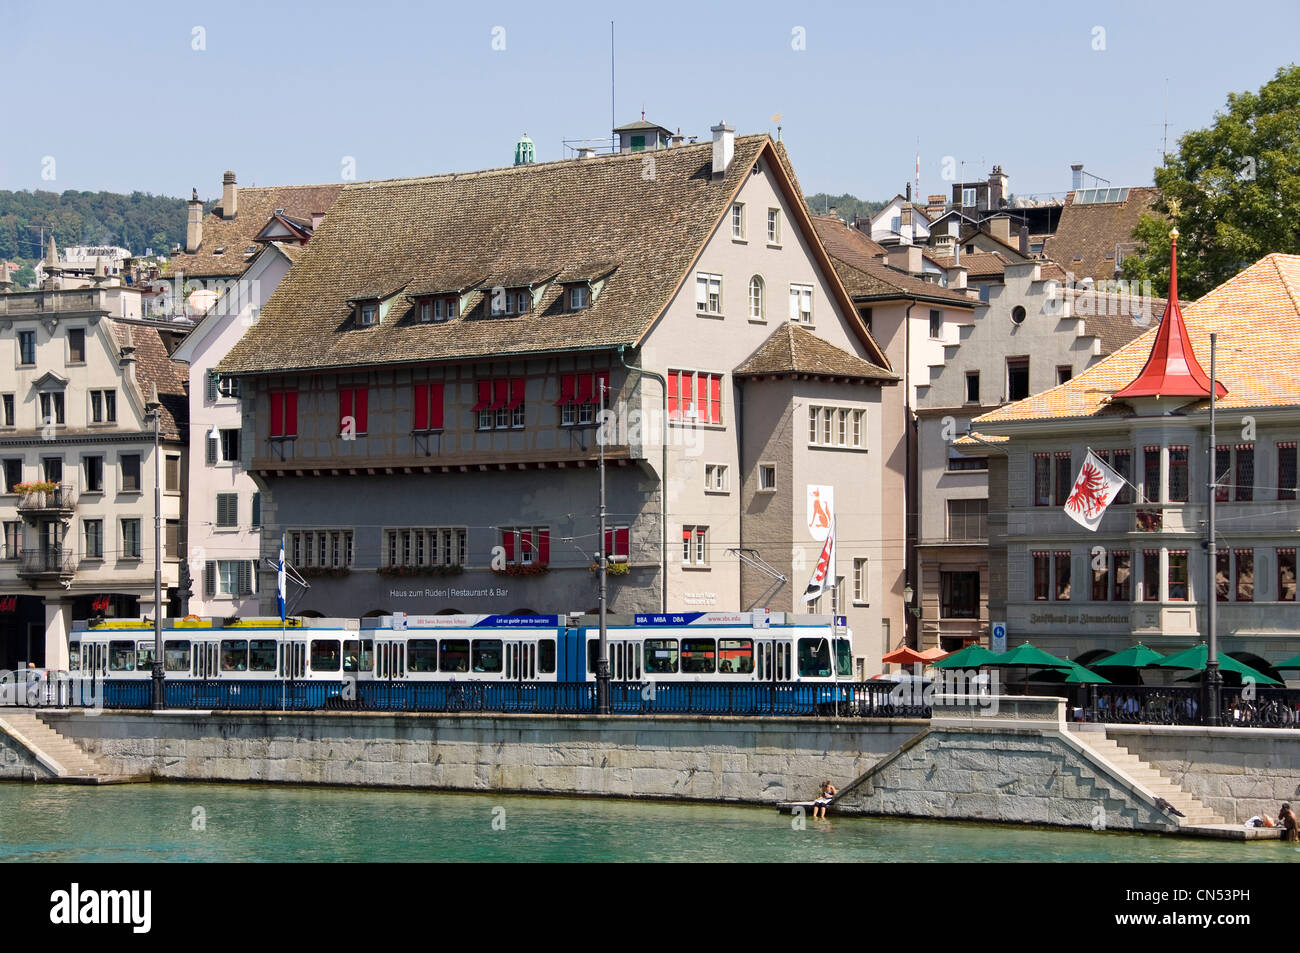 Horizontal view of the Rathaus quarter of Zurich's altstadt with the old historical building Zunfthaus zum Rüden - Stock Image